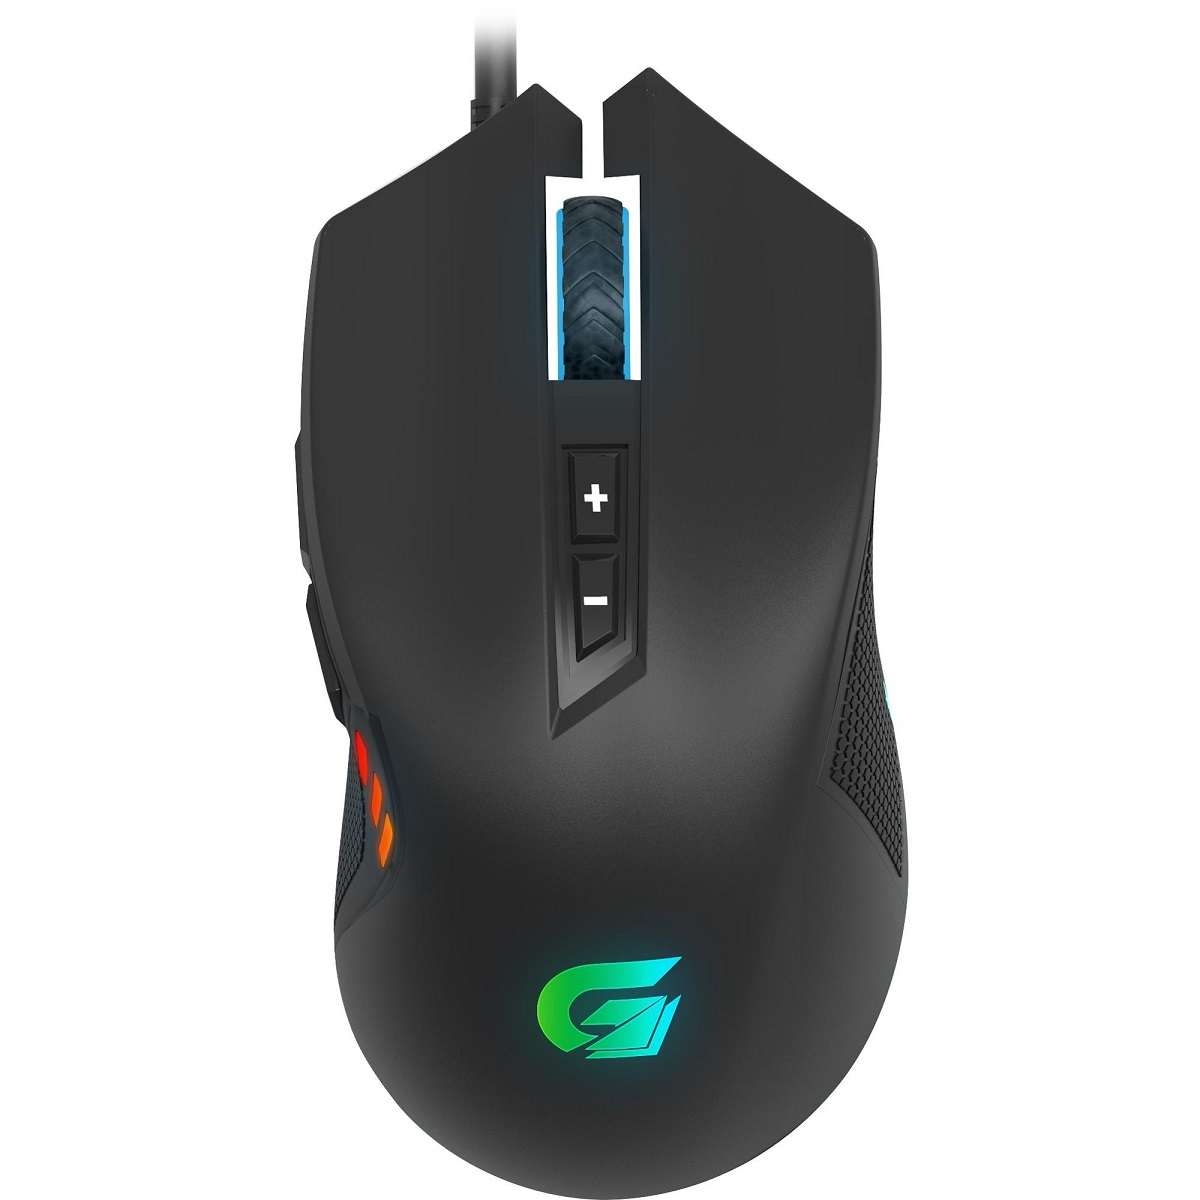 Mouse Gamer Fortrek Vickers 4200 Dpi